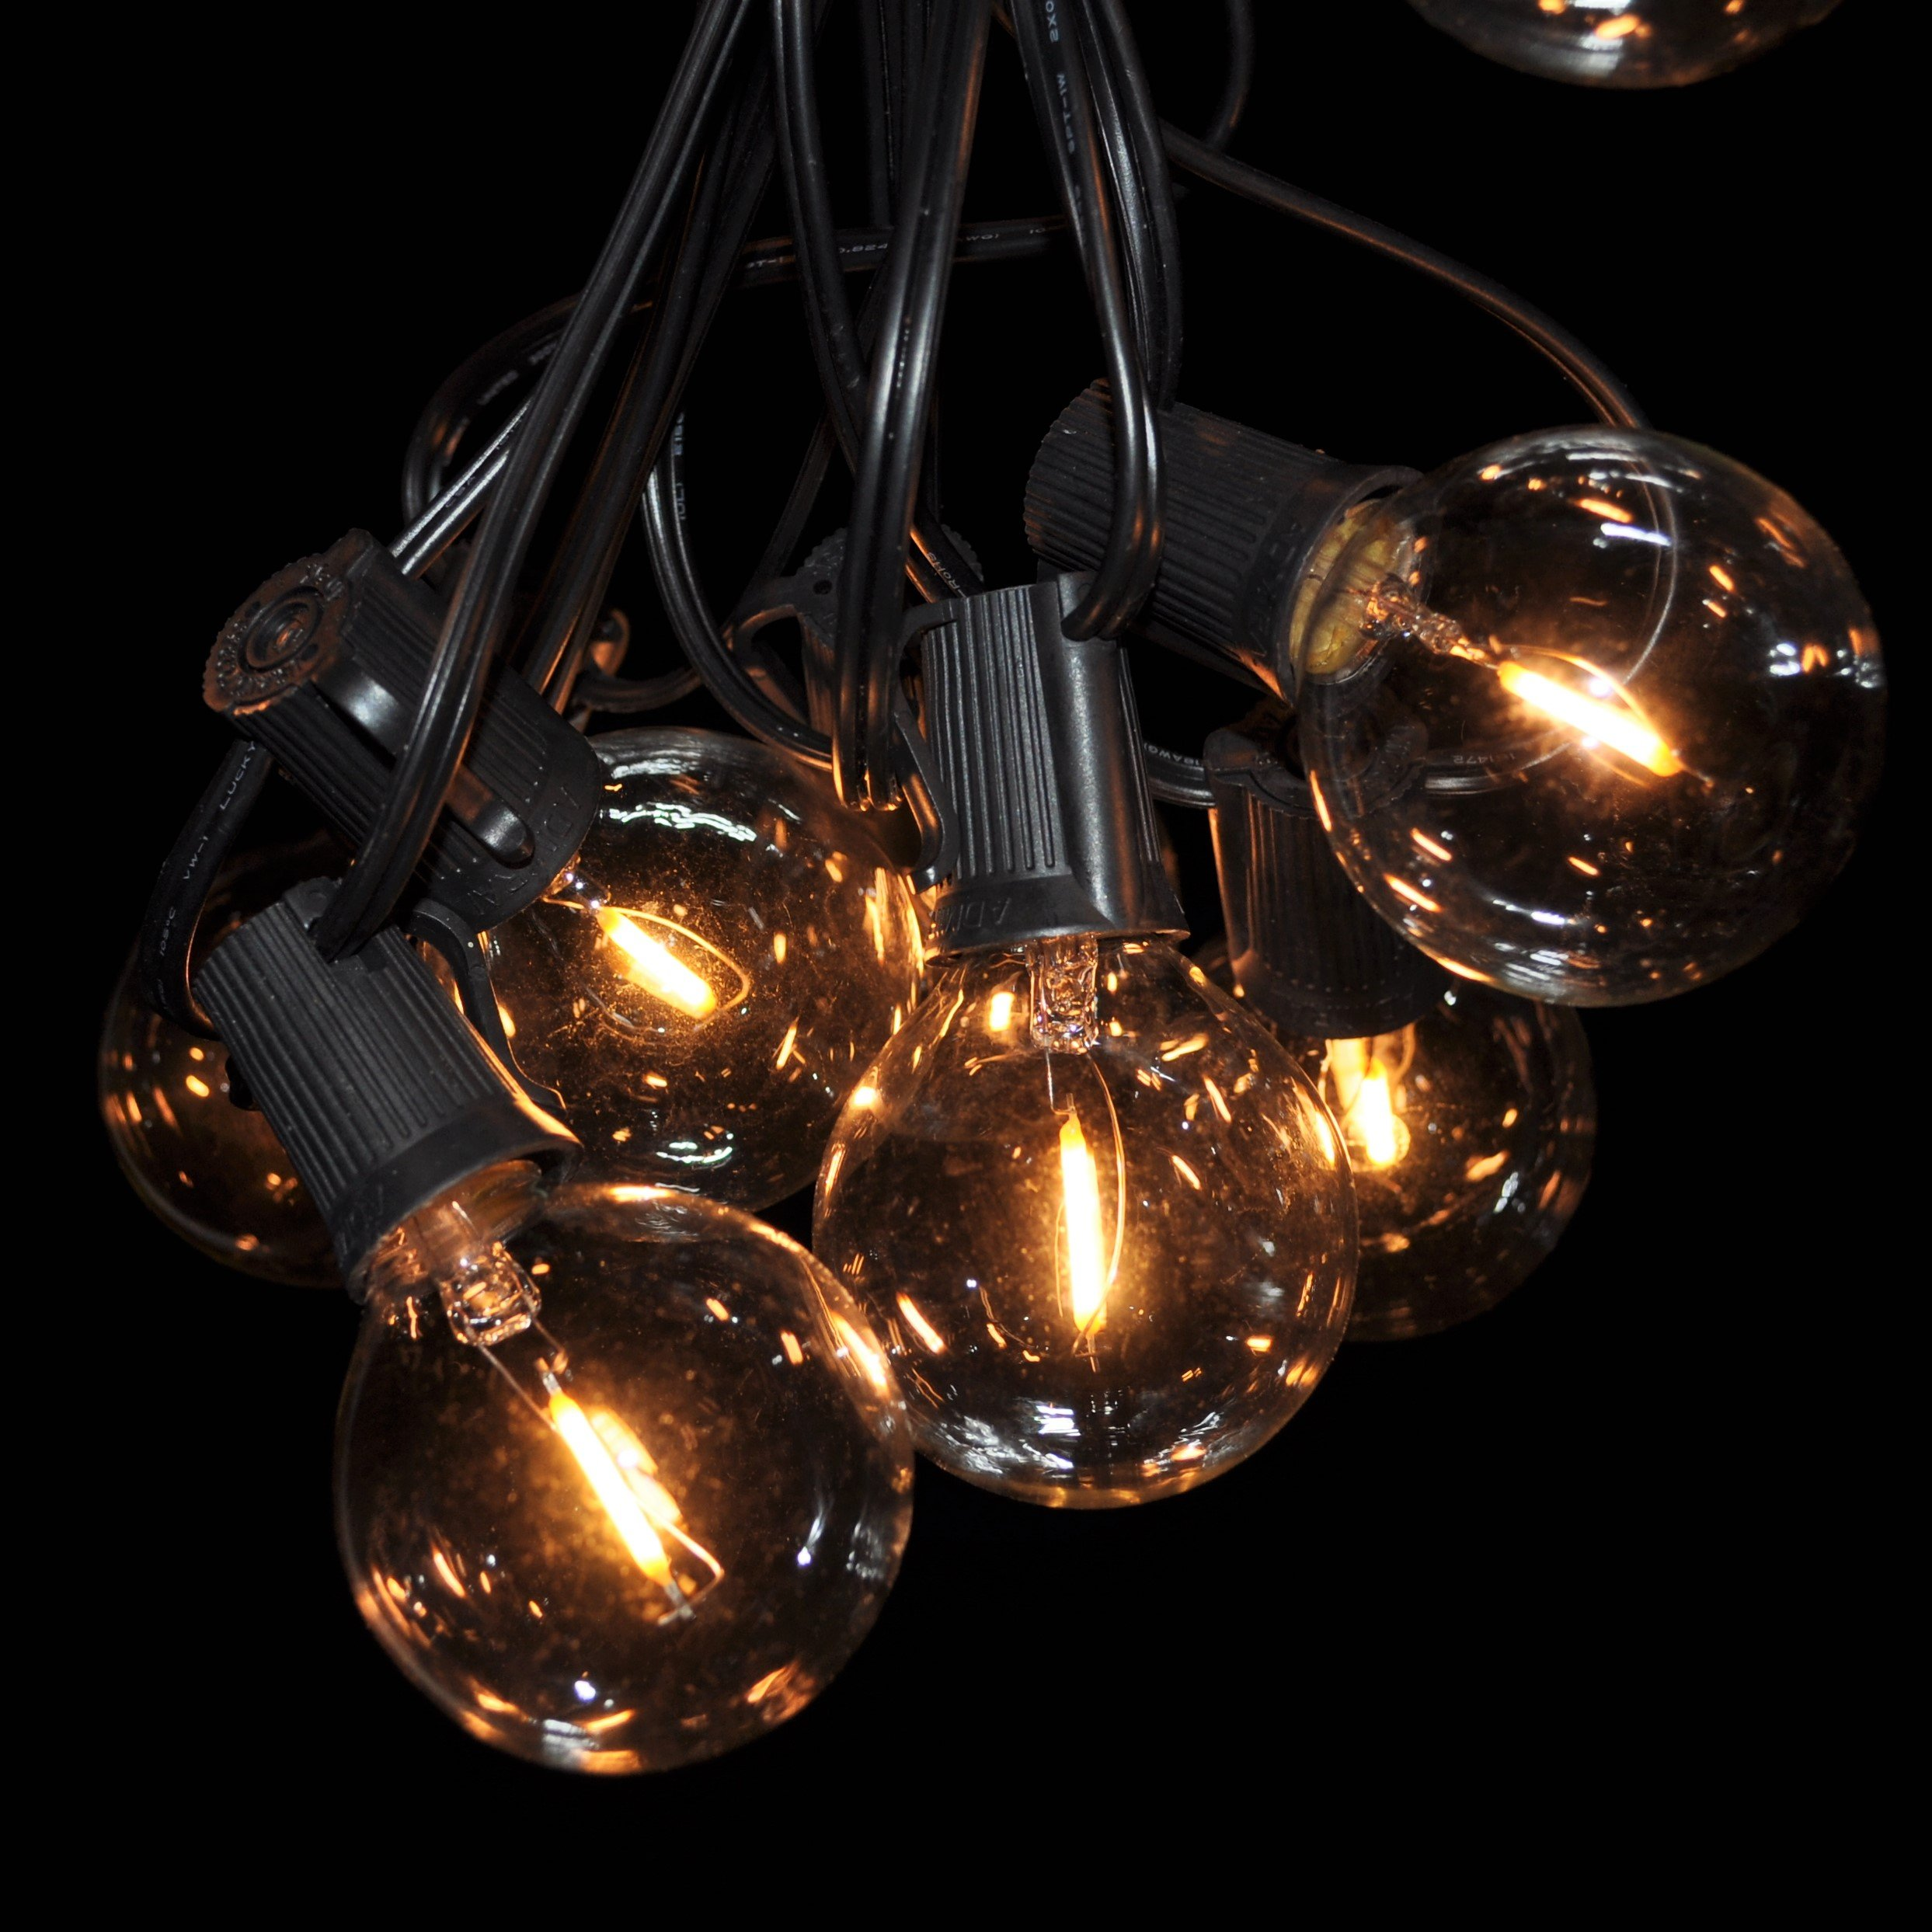 Outdoor Globe String Lights (100 Foot, LED Filament G50 Clear - Black Wire - 2 Inch .6 Watt Bulbs)